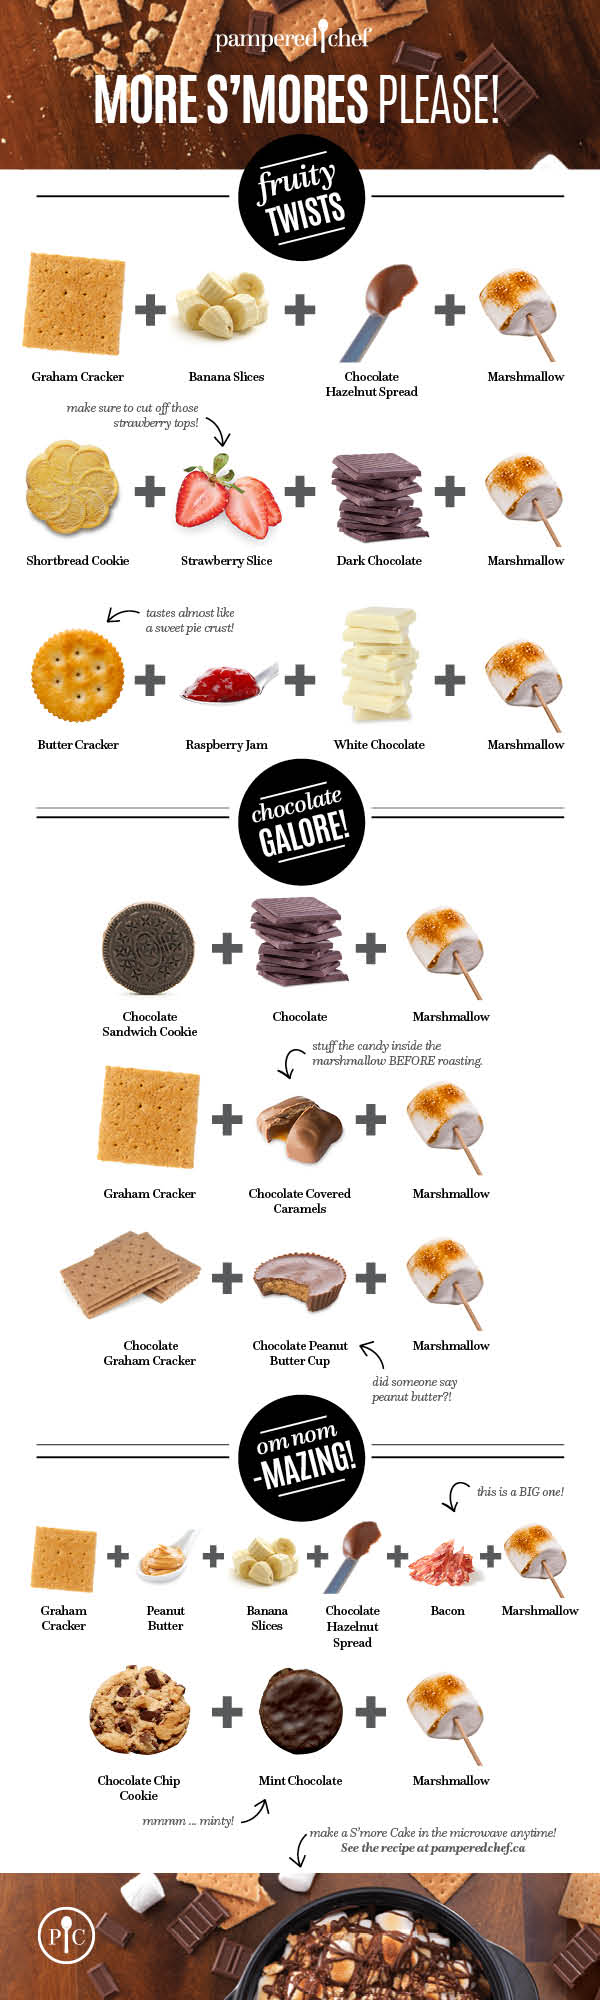 More S'mores Infographic